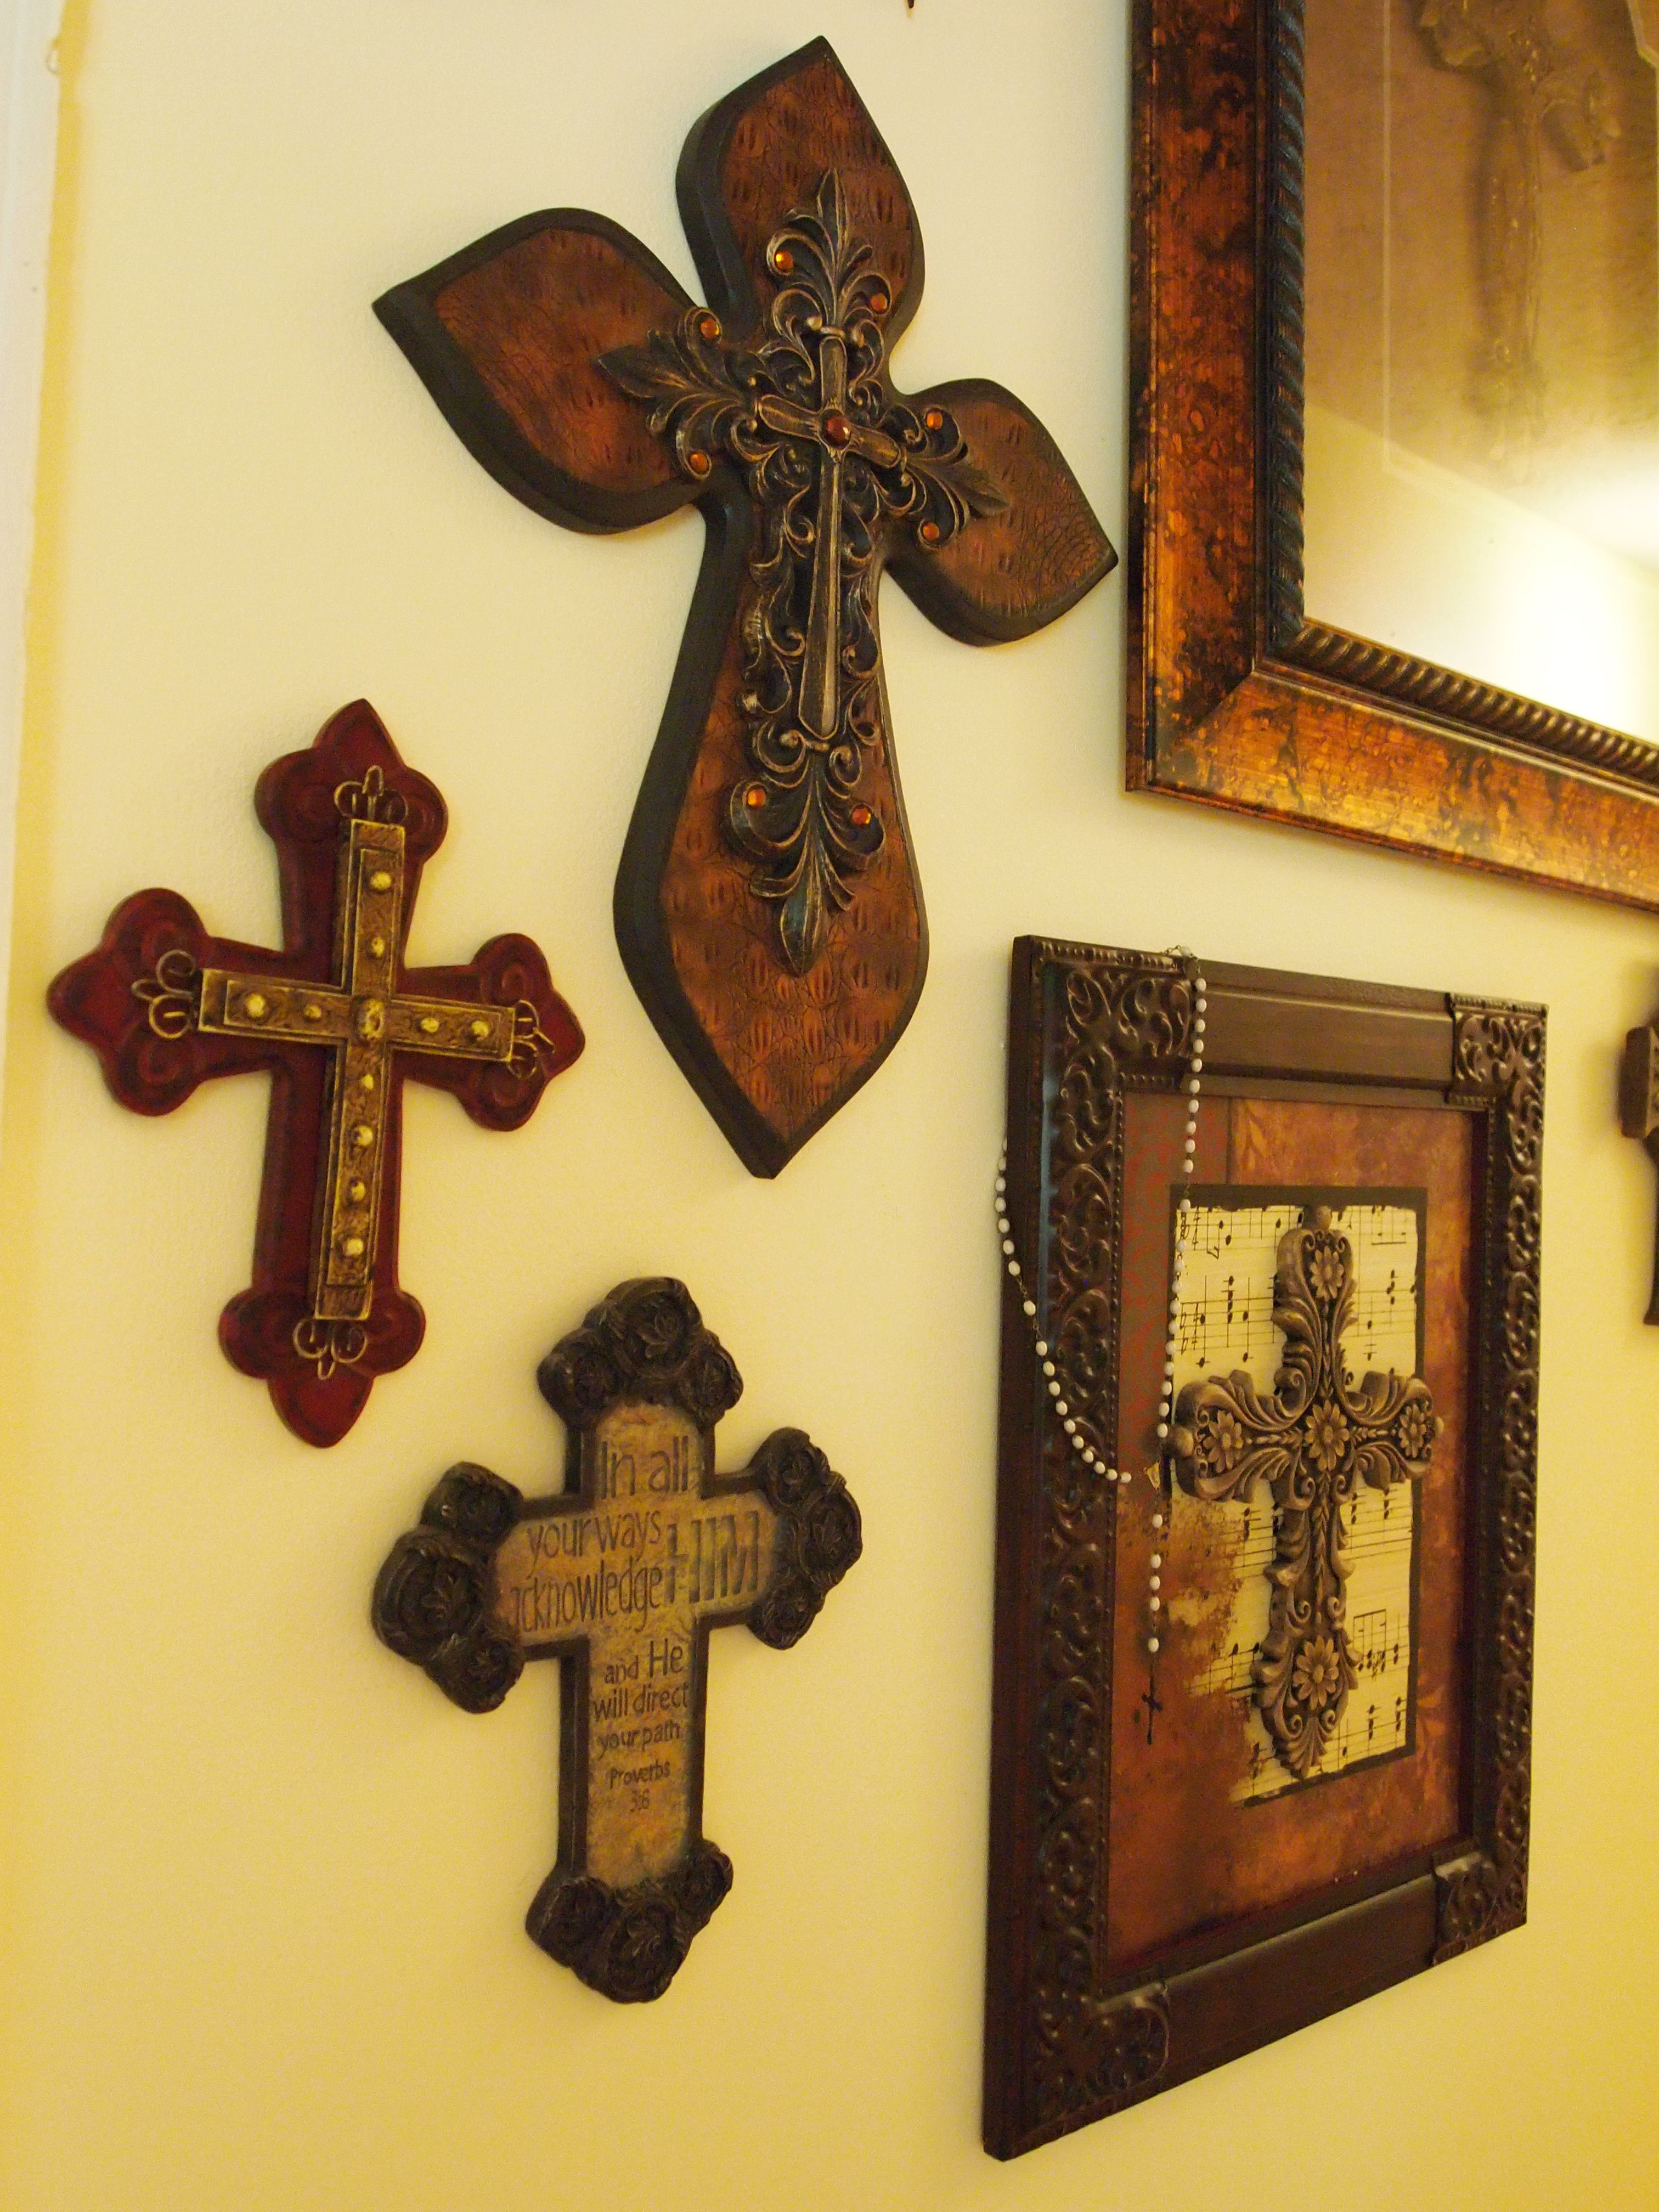 crosses as wall art | The Cross | Pinterest | Cross walls, Walls and ...